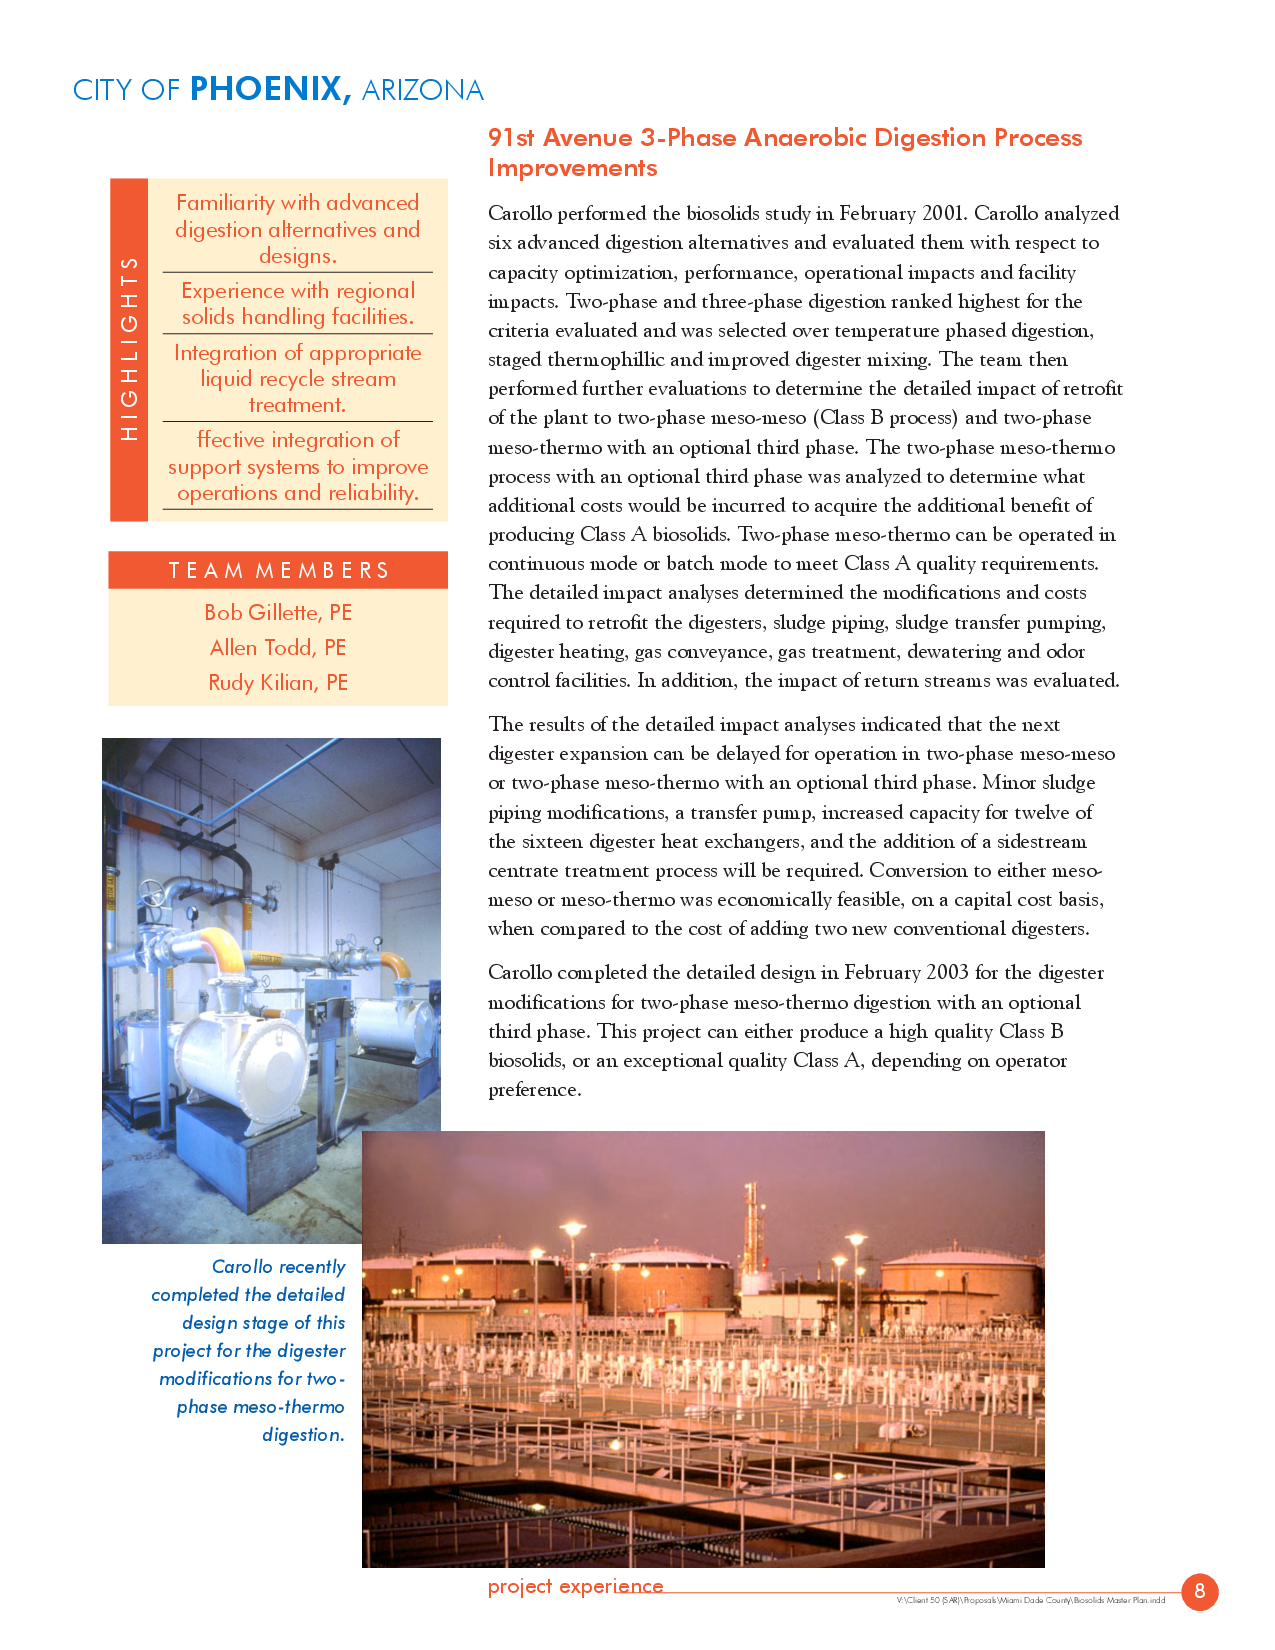 Phoenix Az 3 Phase Anaerobic Digestion Process Improvemen